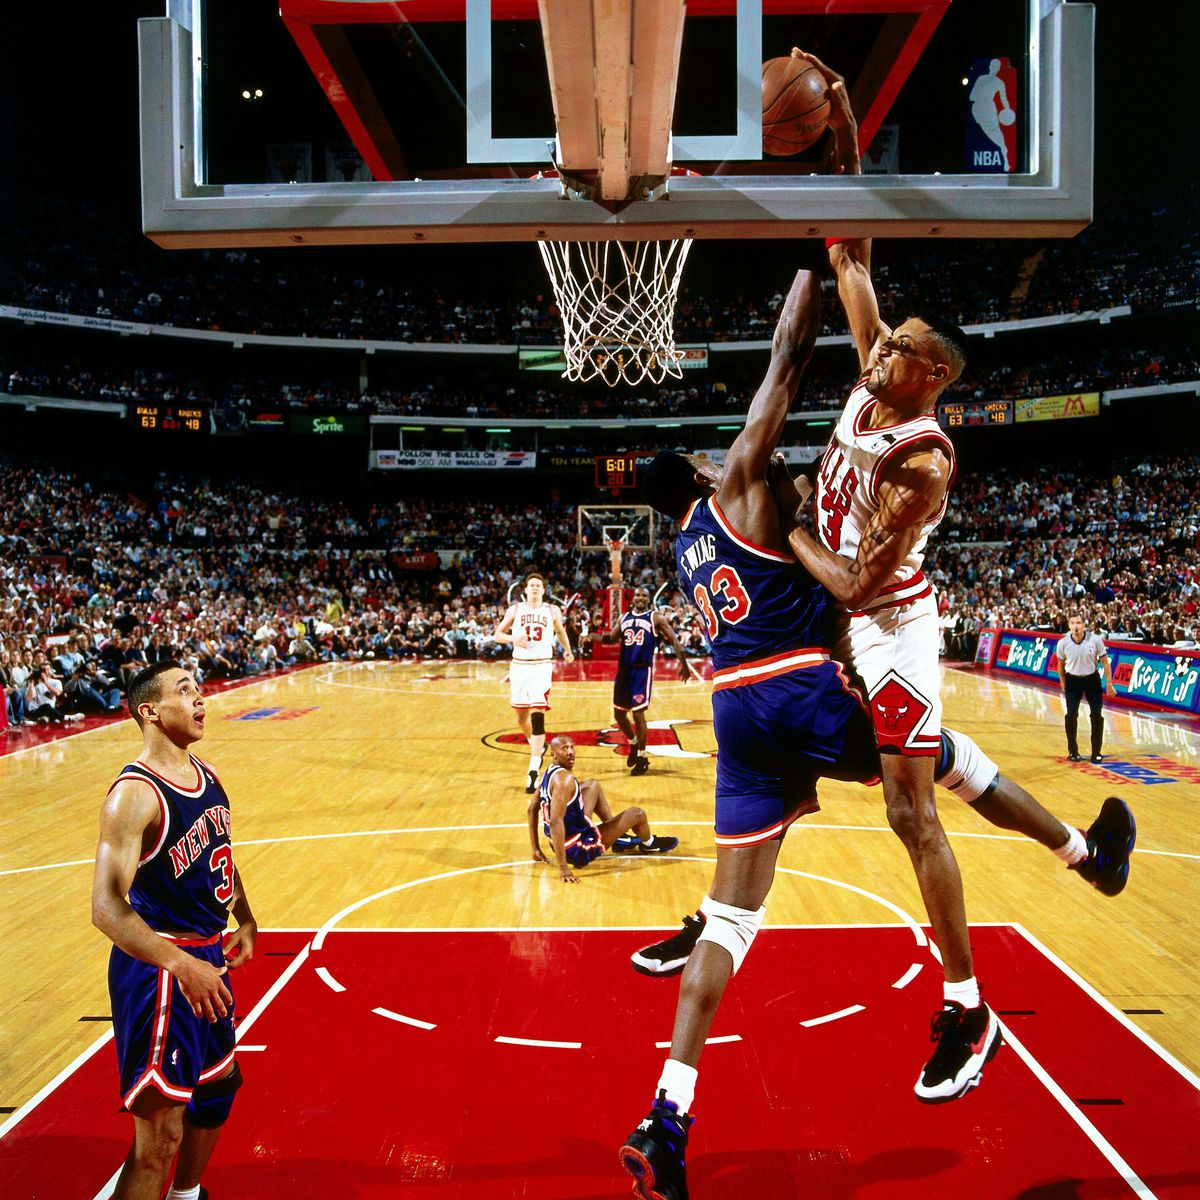 Pippen goes for a dunk